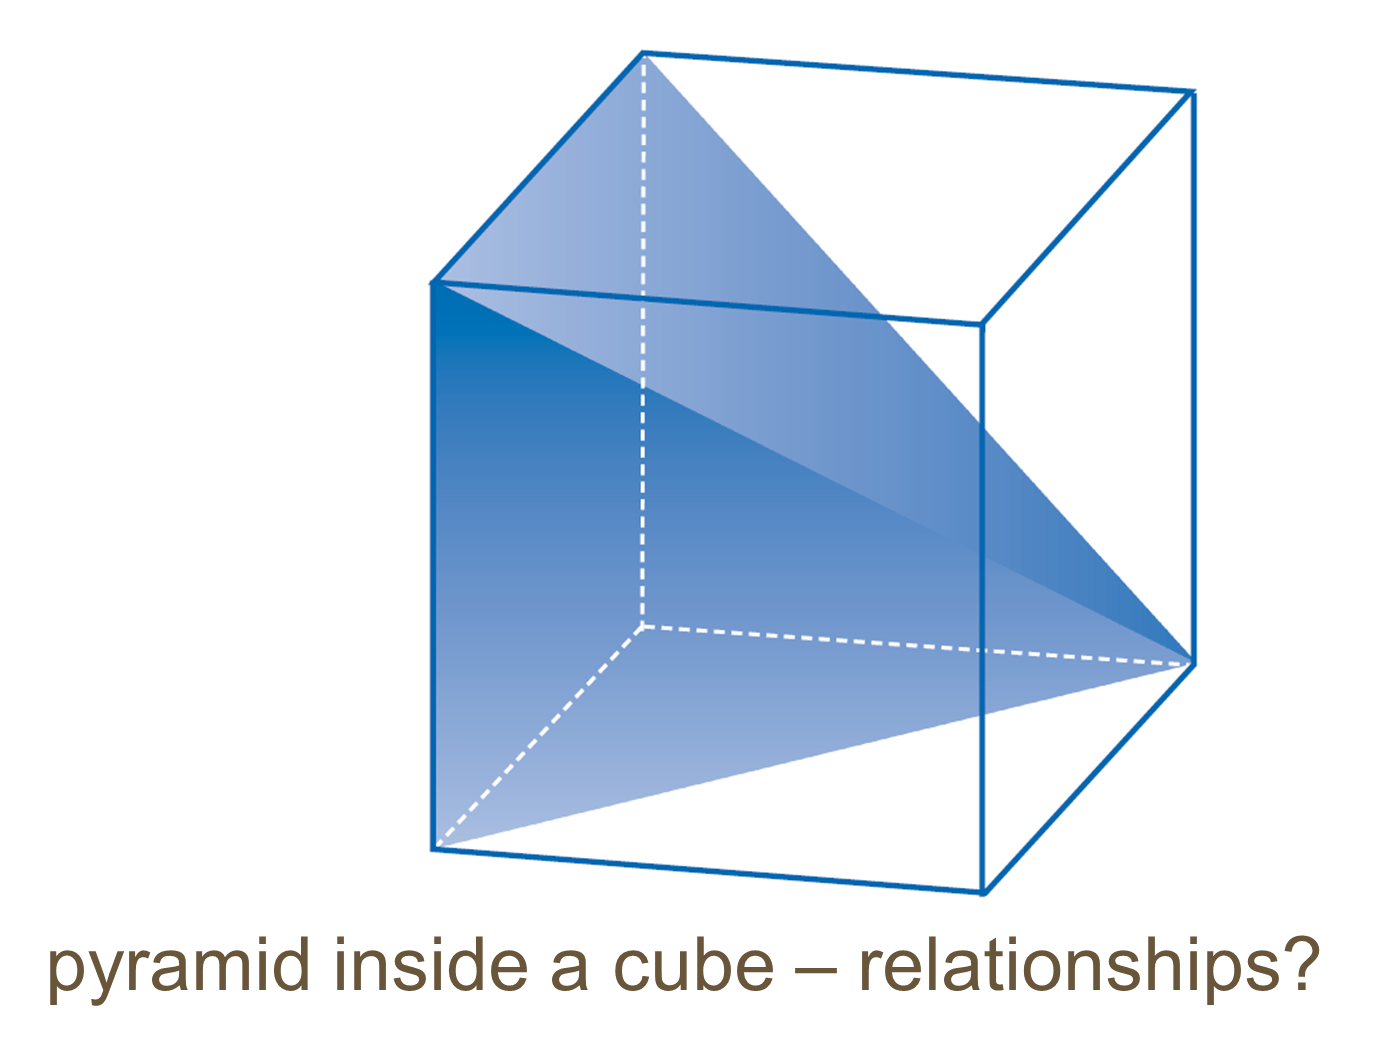 solid mensuration of pyramids Volume formulas for geometric shapes volume of cube, prism, rectangular prism, pyramid, tetrahedron, cylinder, cone, sphere.